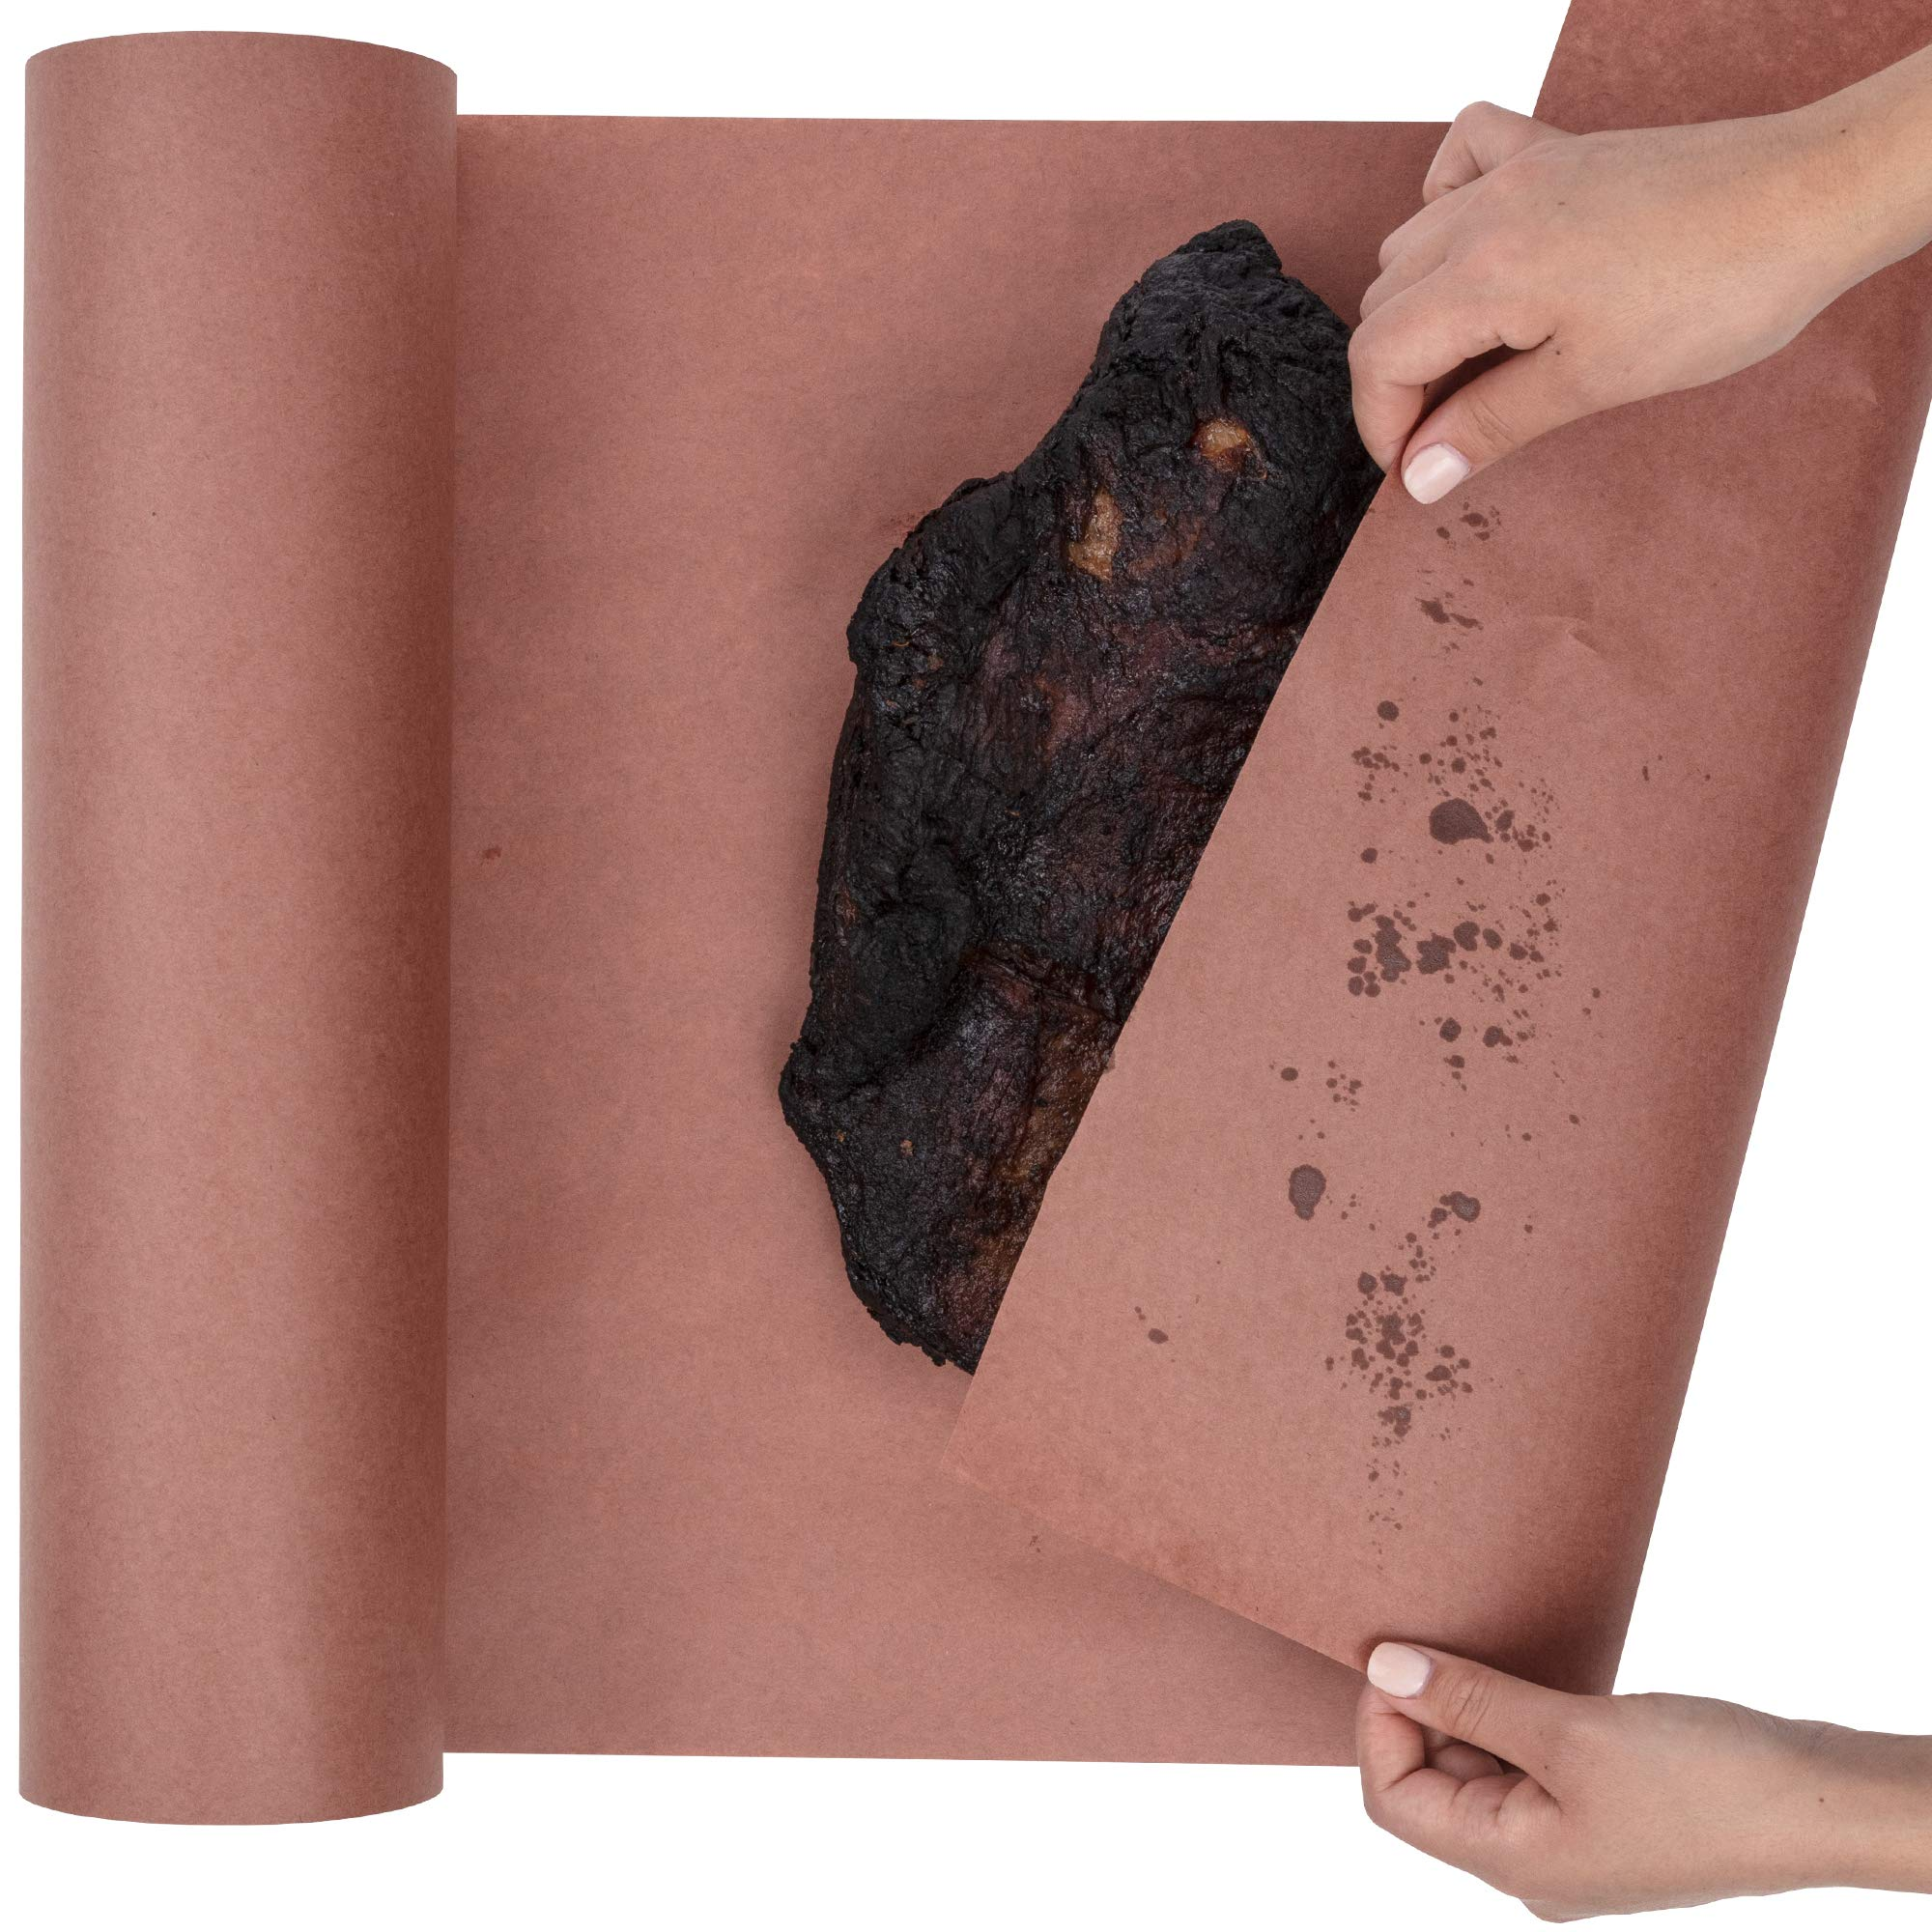 Butcher Paper Roll USA Made, Fda Approved, for BBQ and Meat Smoking. Natural Unbleached Paper by DIY Crew (Pink, 24''x200')